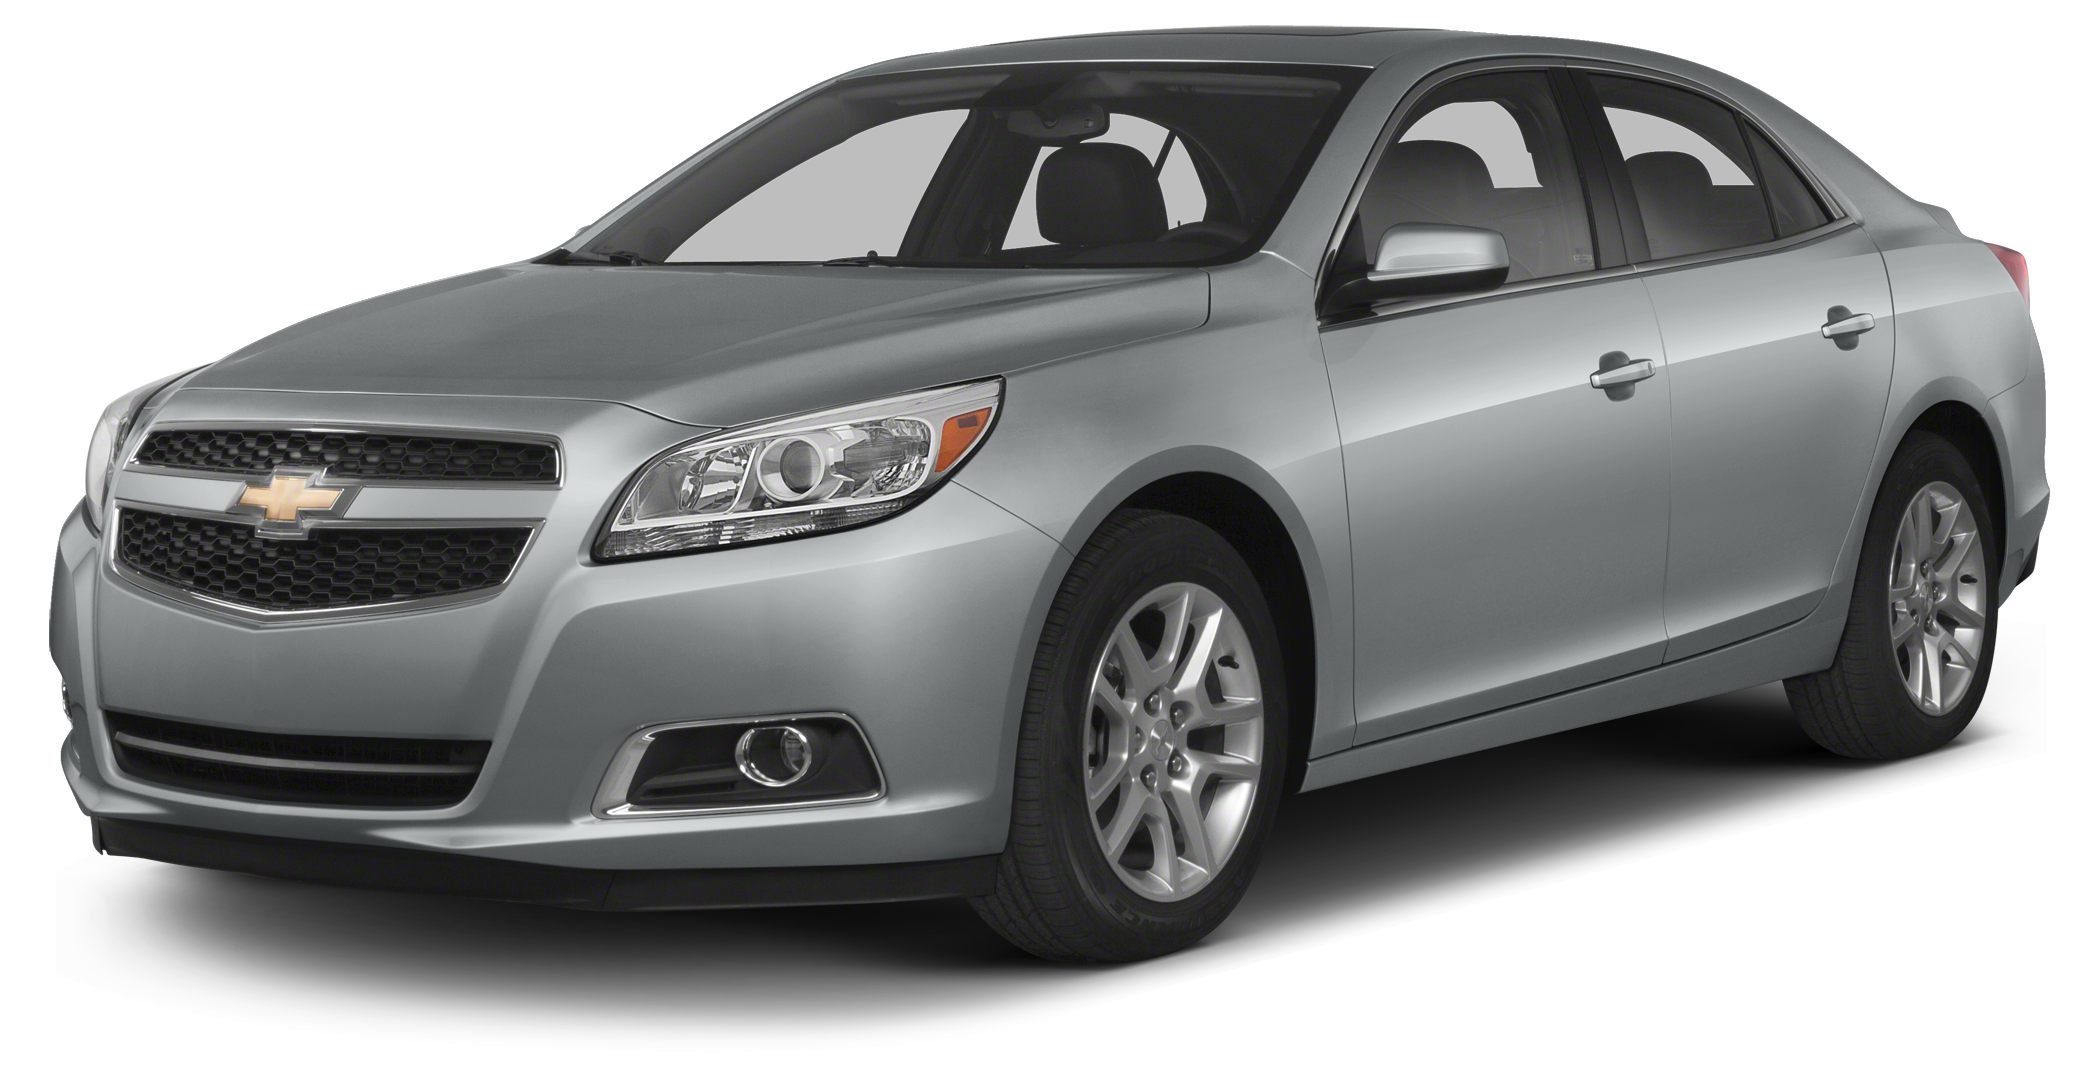 2013 Chevrolet Malibu ECO One Owner Local Trade with a Clean Carfax and only 41661 Miles 2013 Ma